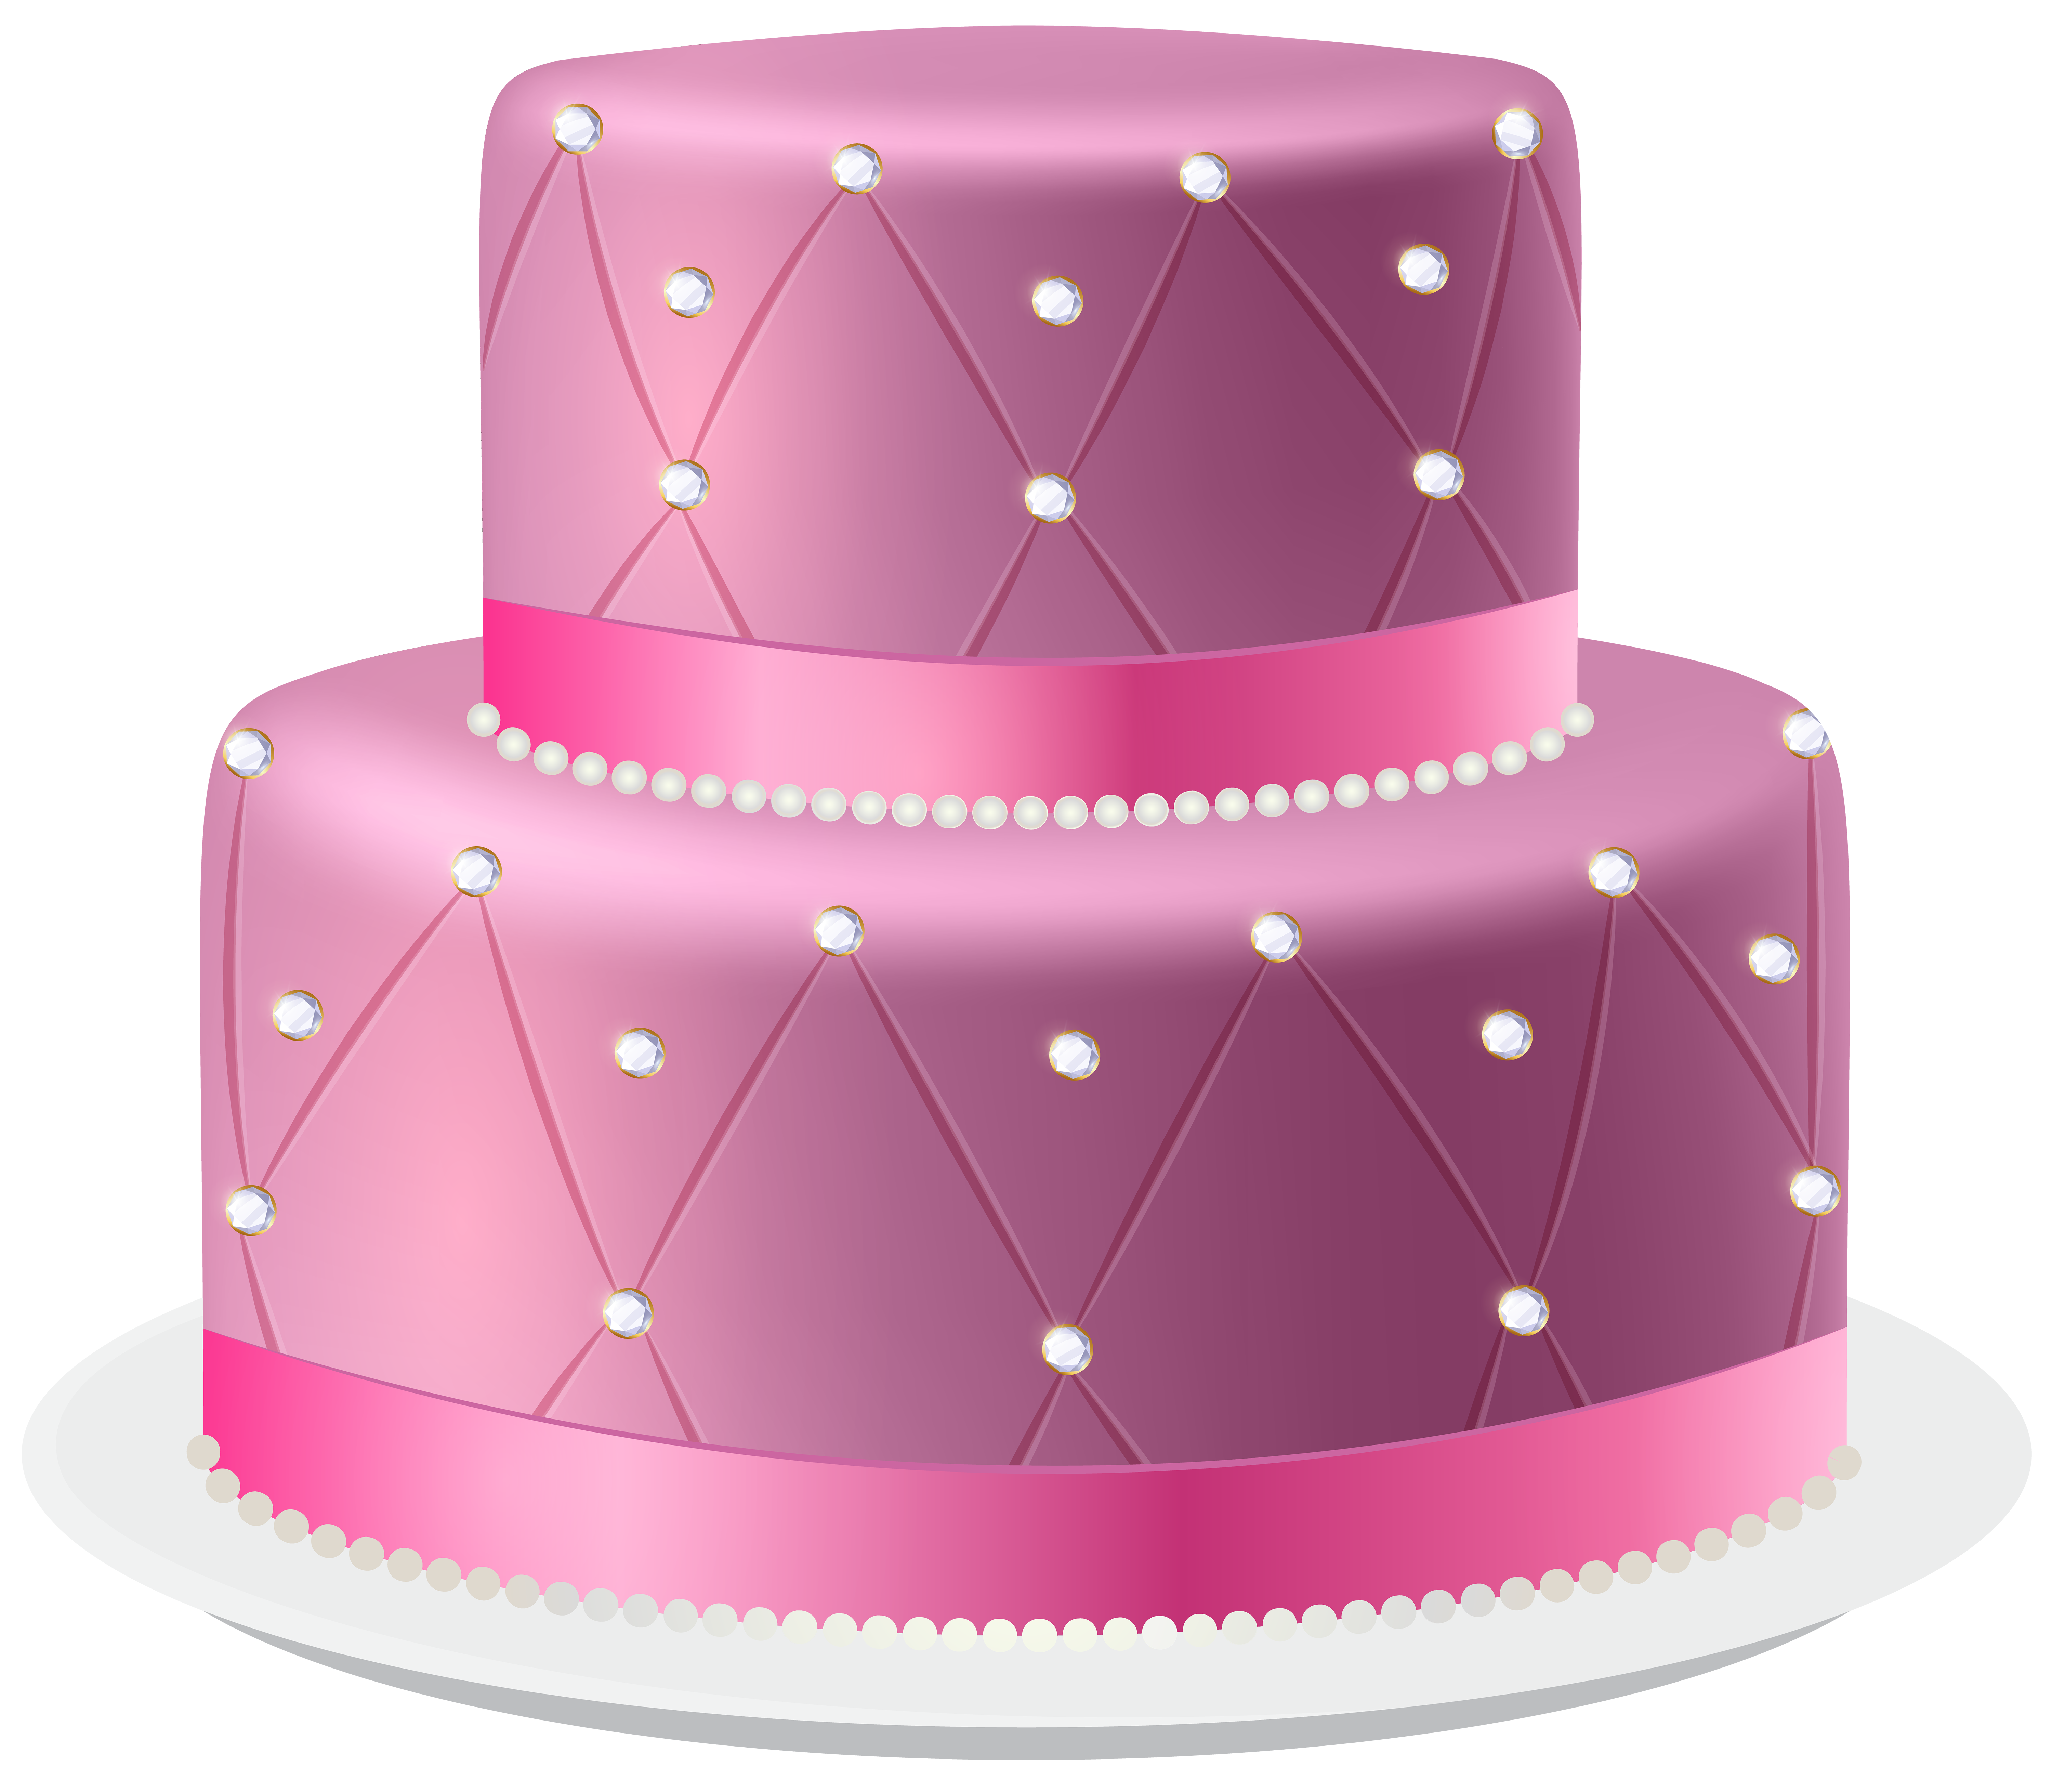 Pink cake png. Clip art image gallery